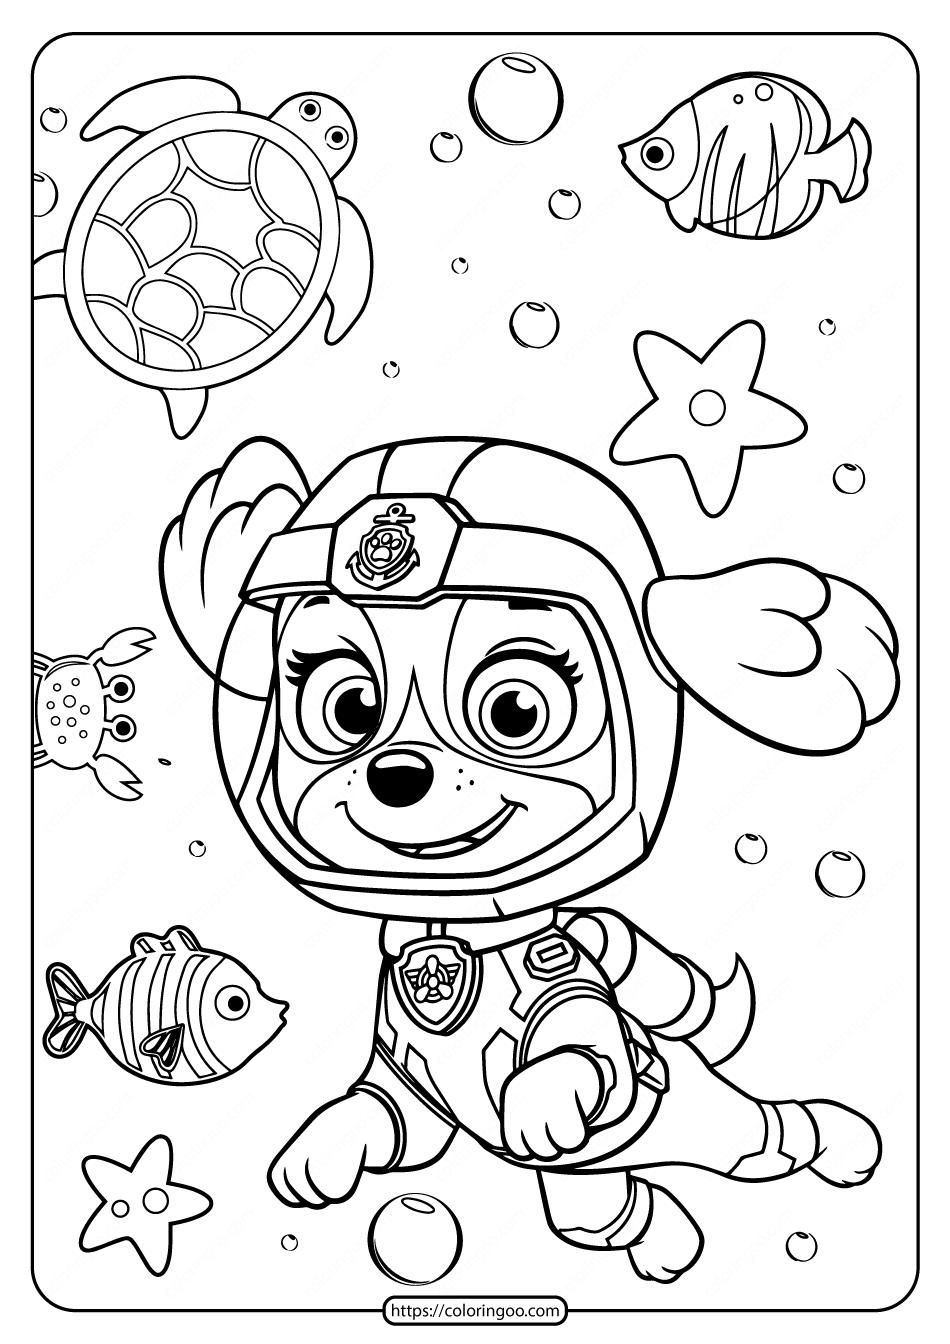 Printable Paw Patrol Pdf Coloring Pages for Boys